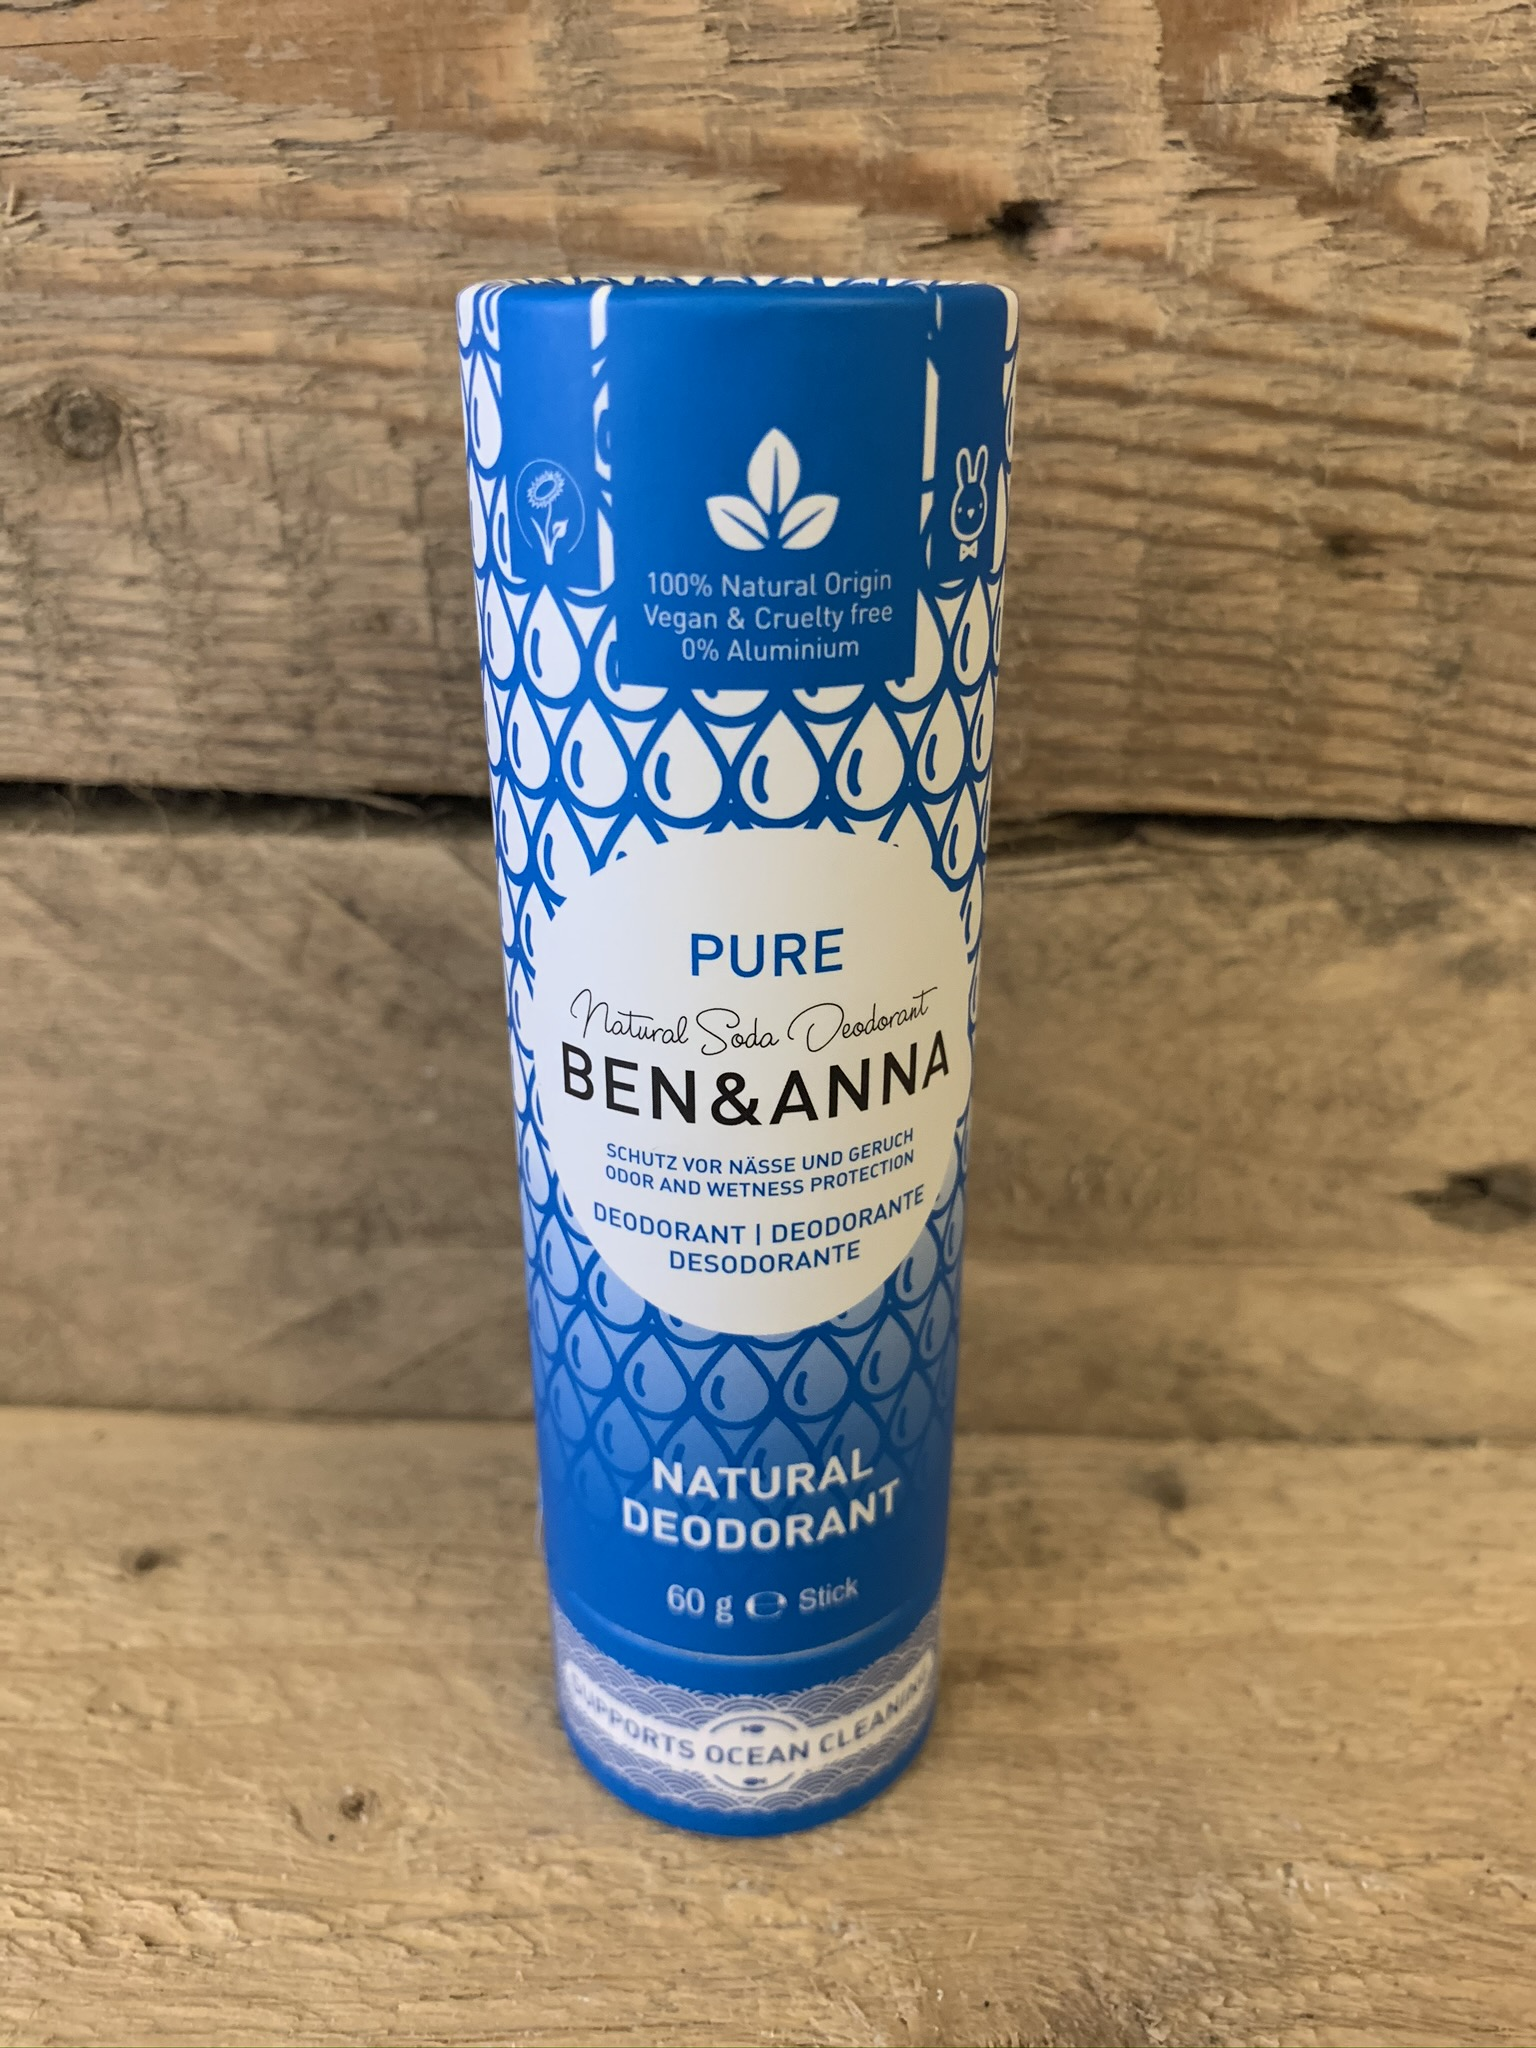 Ben & Anna Pure Natural Deodorant Stick